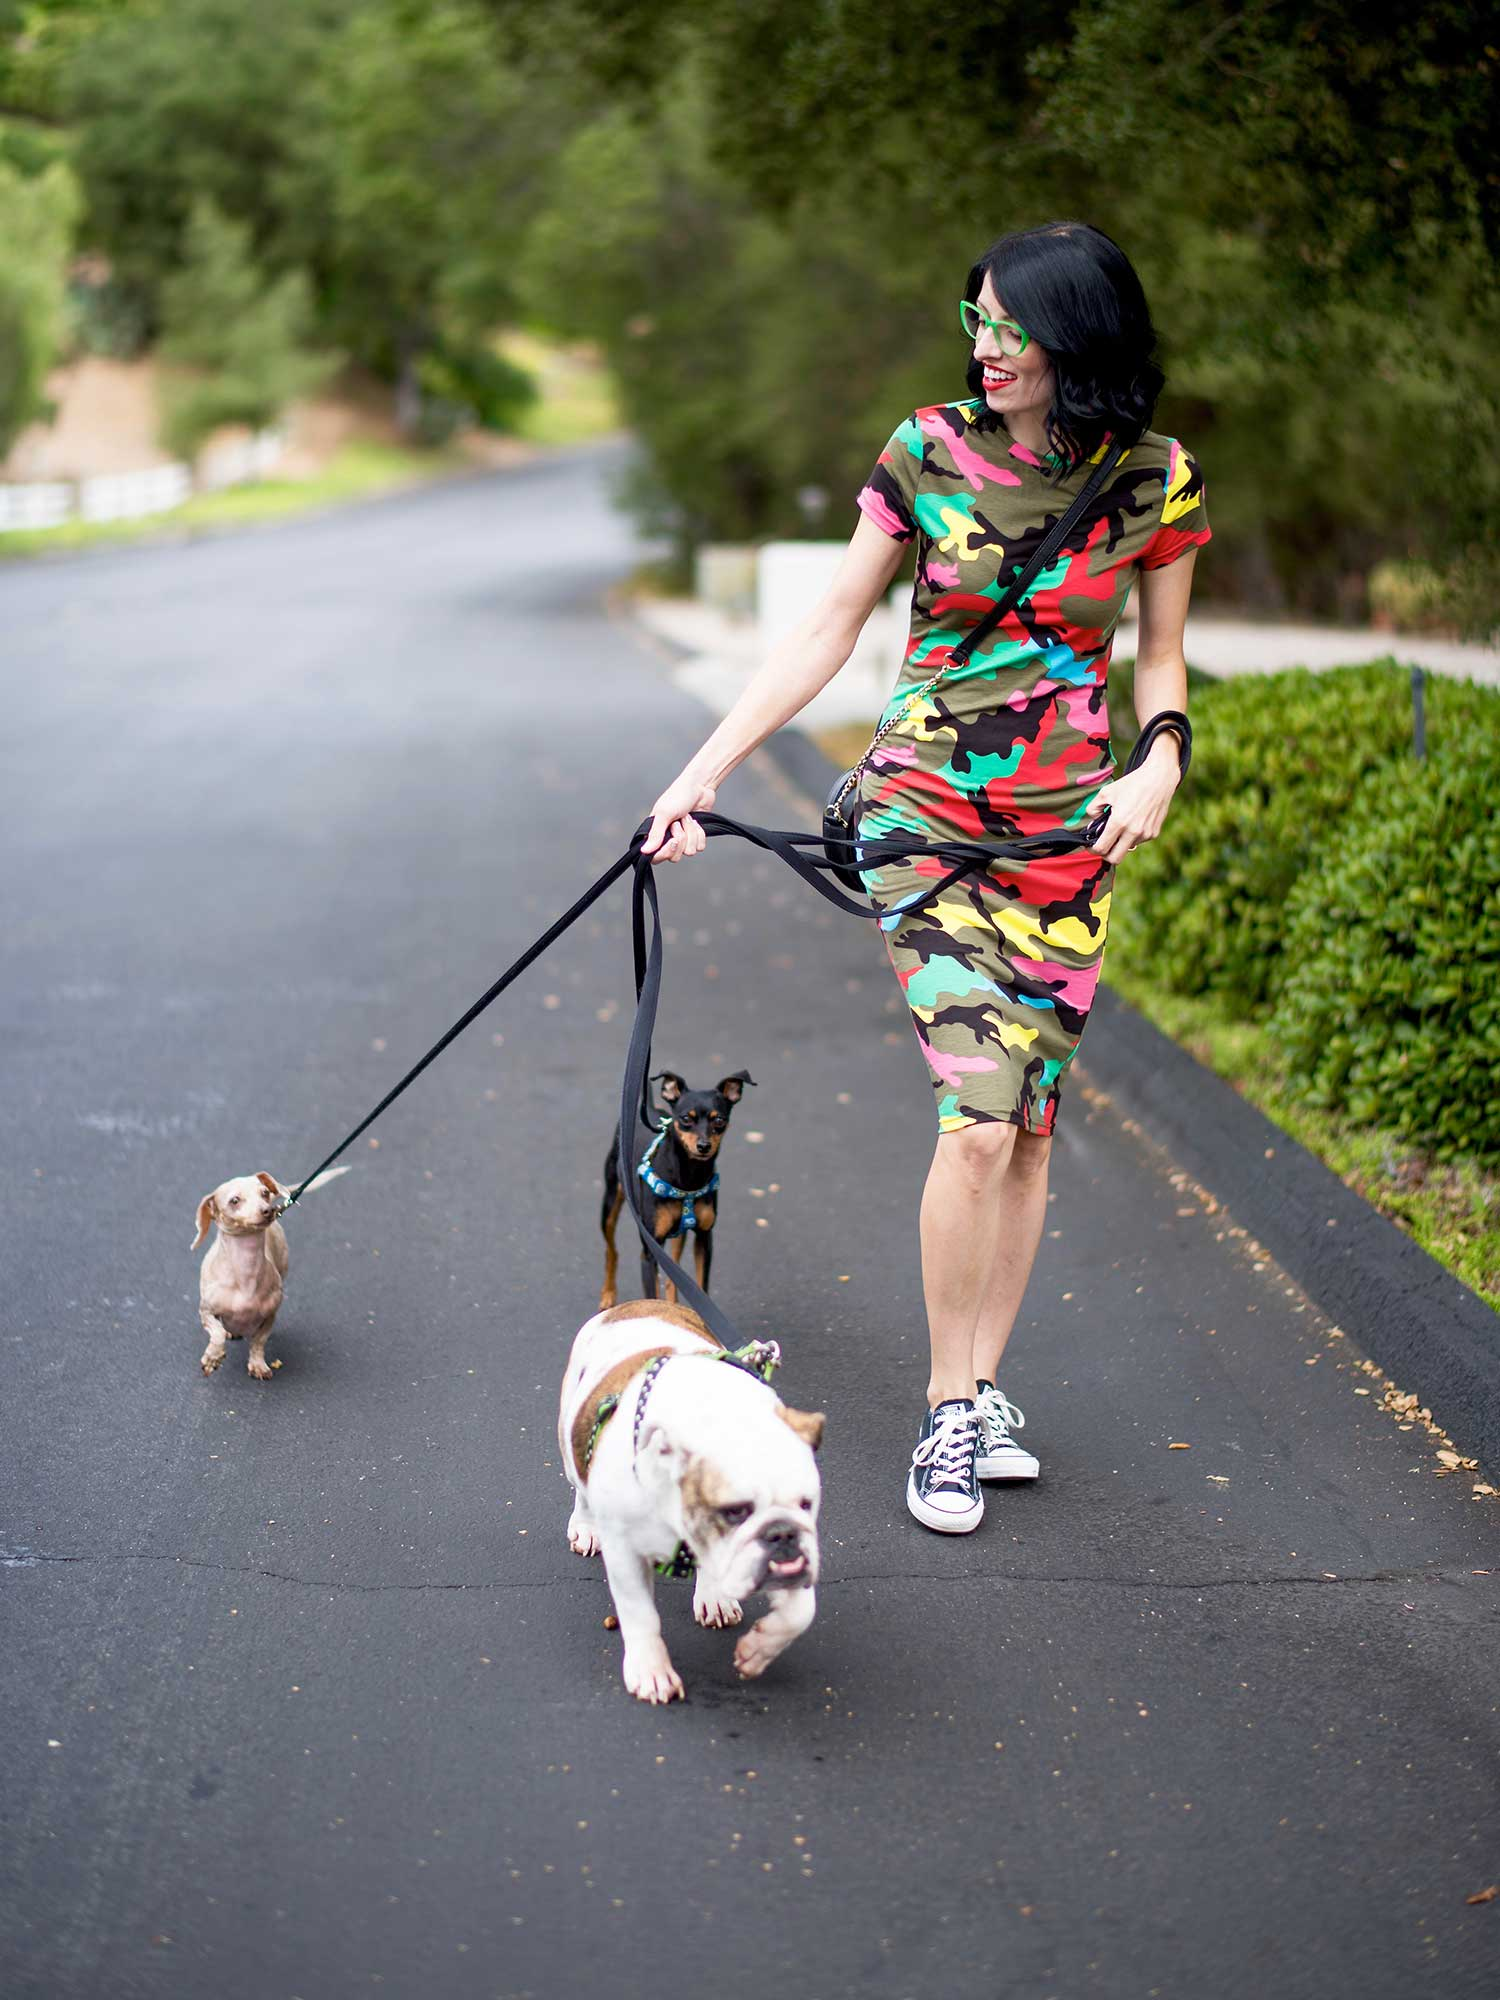 jenna-pilant-san-diego-fashion-blogger-lucky-little-mustardseed-how-to-wear-colors-in-fall-camo-dress-romwe-3